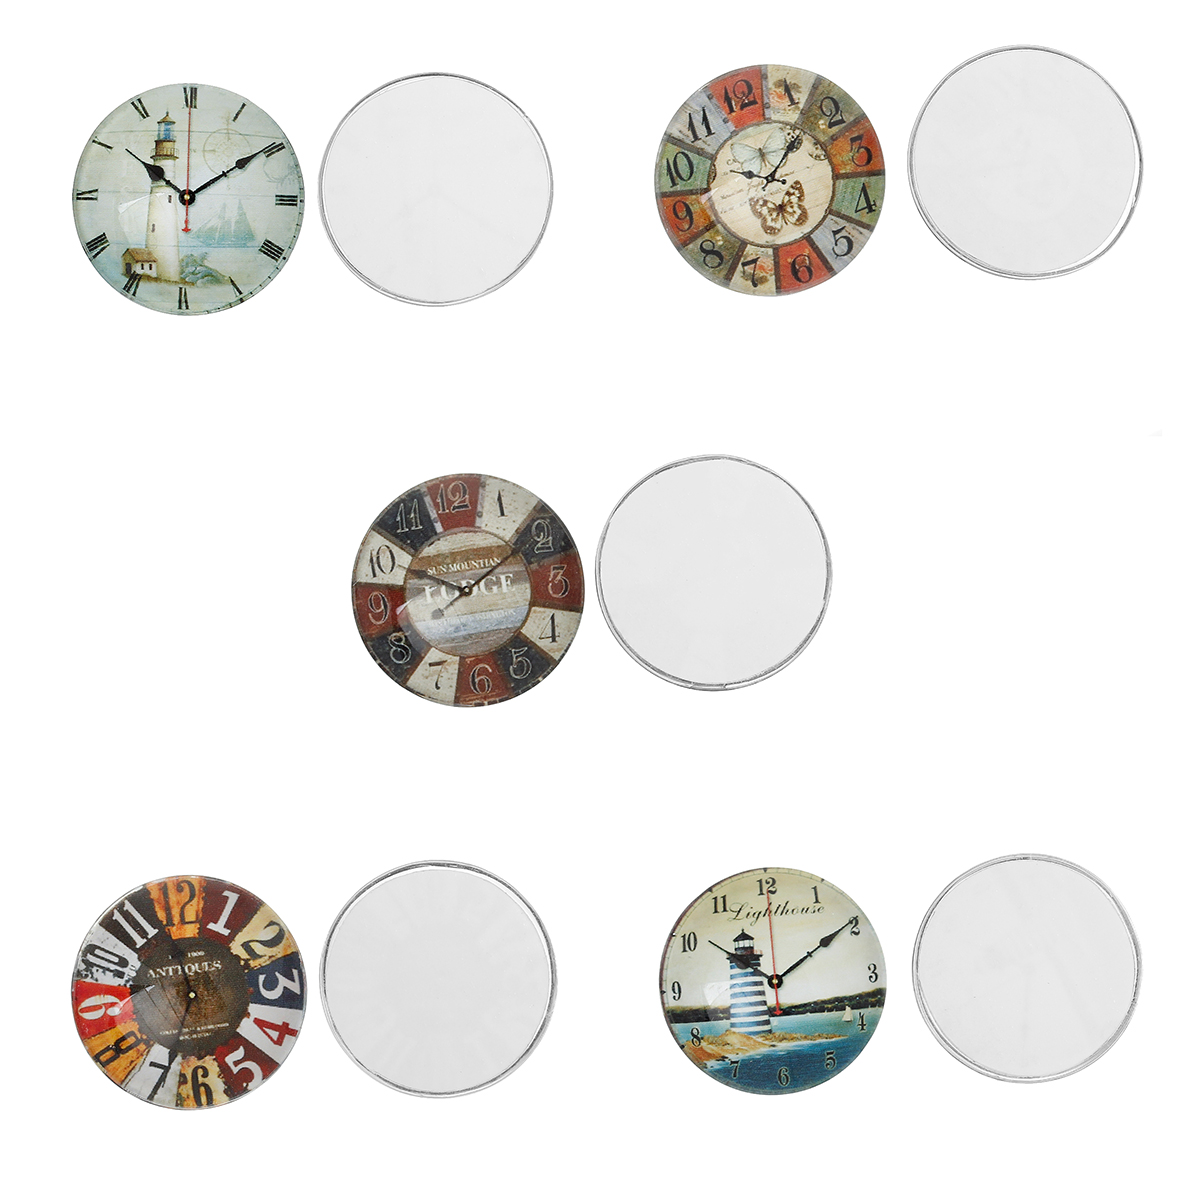 8SEASONS Glass Dome Cabochon Round Flatback Mixed Color Pattern 25mm(1)  Dia 05fc9a3baccaa